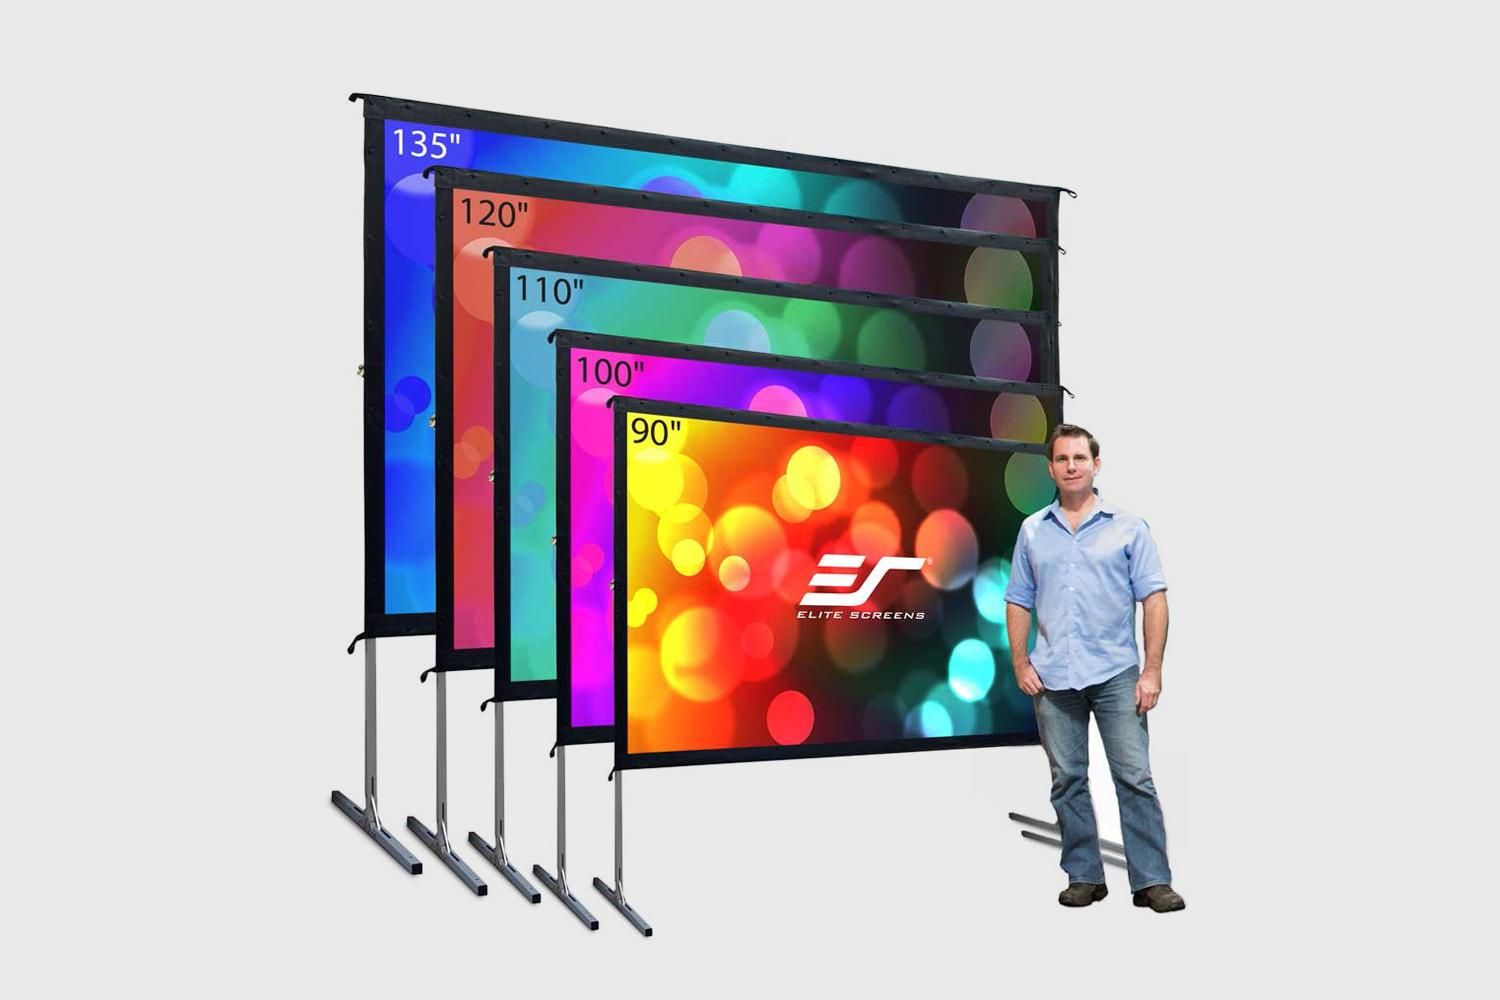 Amazon Com Elite Screens Yard Master 2 Series Foldable Frame Outdoor Front Projec Outdoor Projector Screen Diy Outdoor Projection Screen Projector Screen Diy